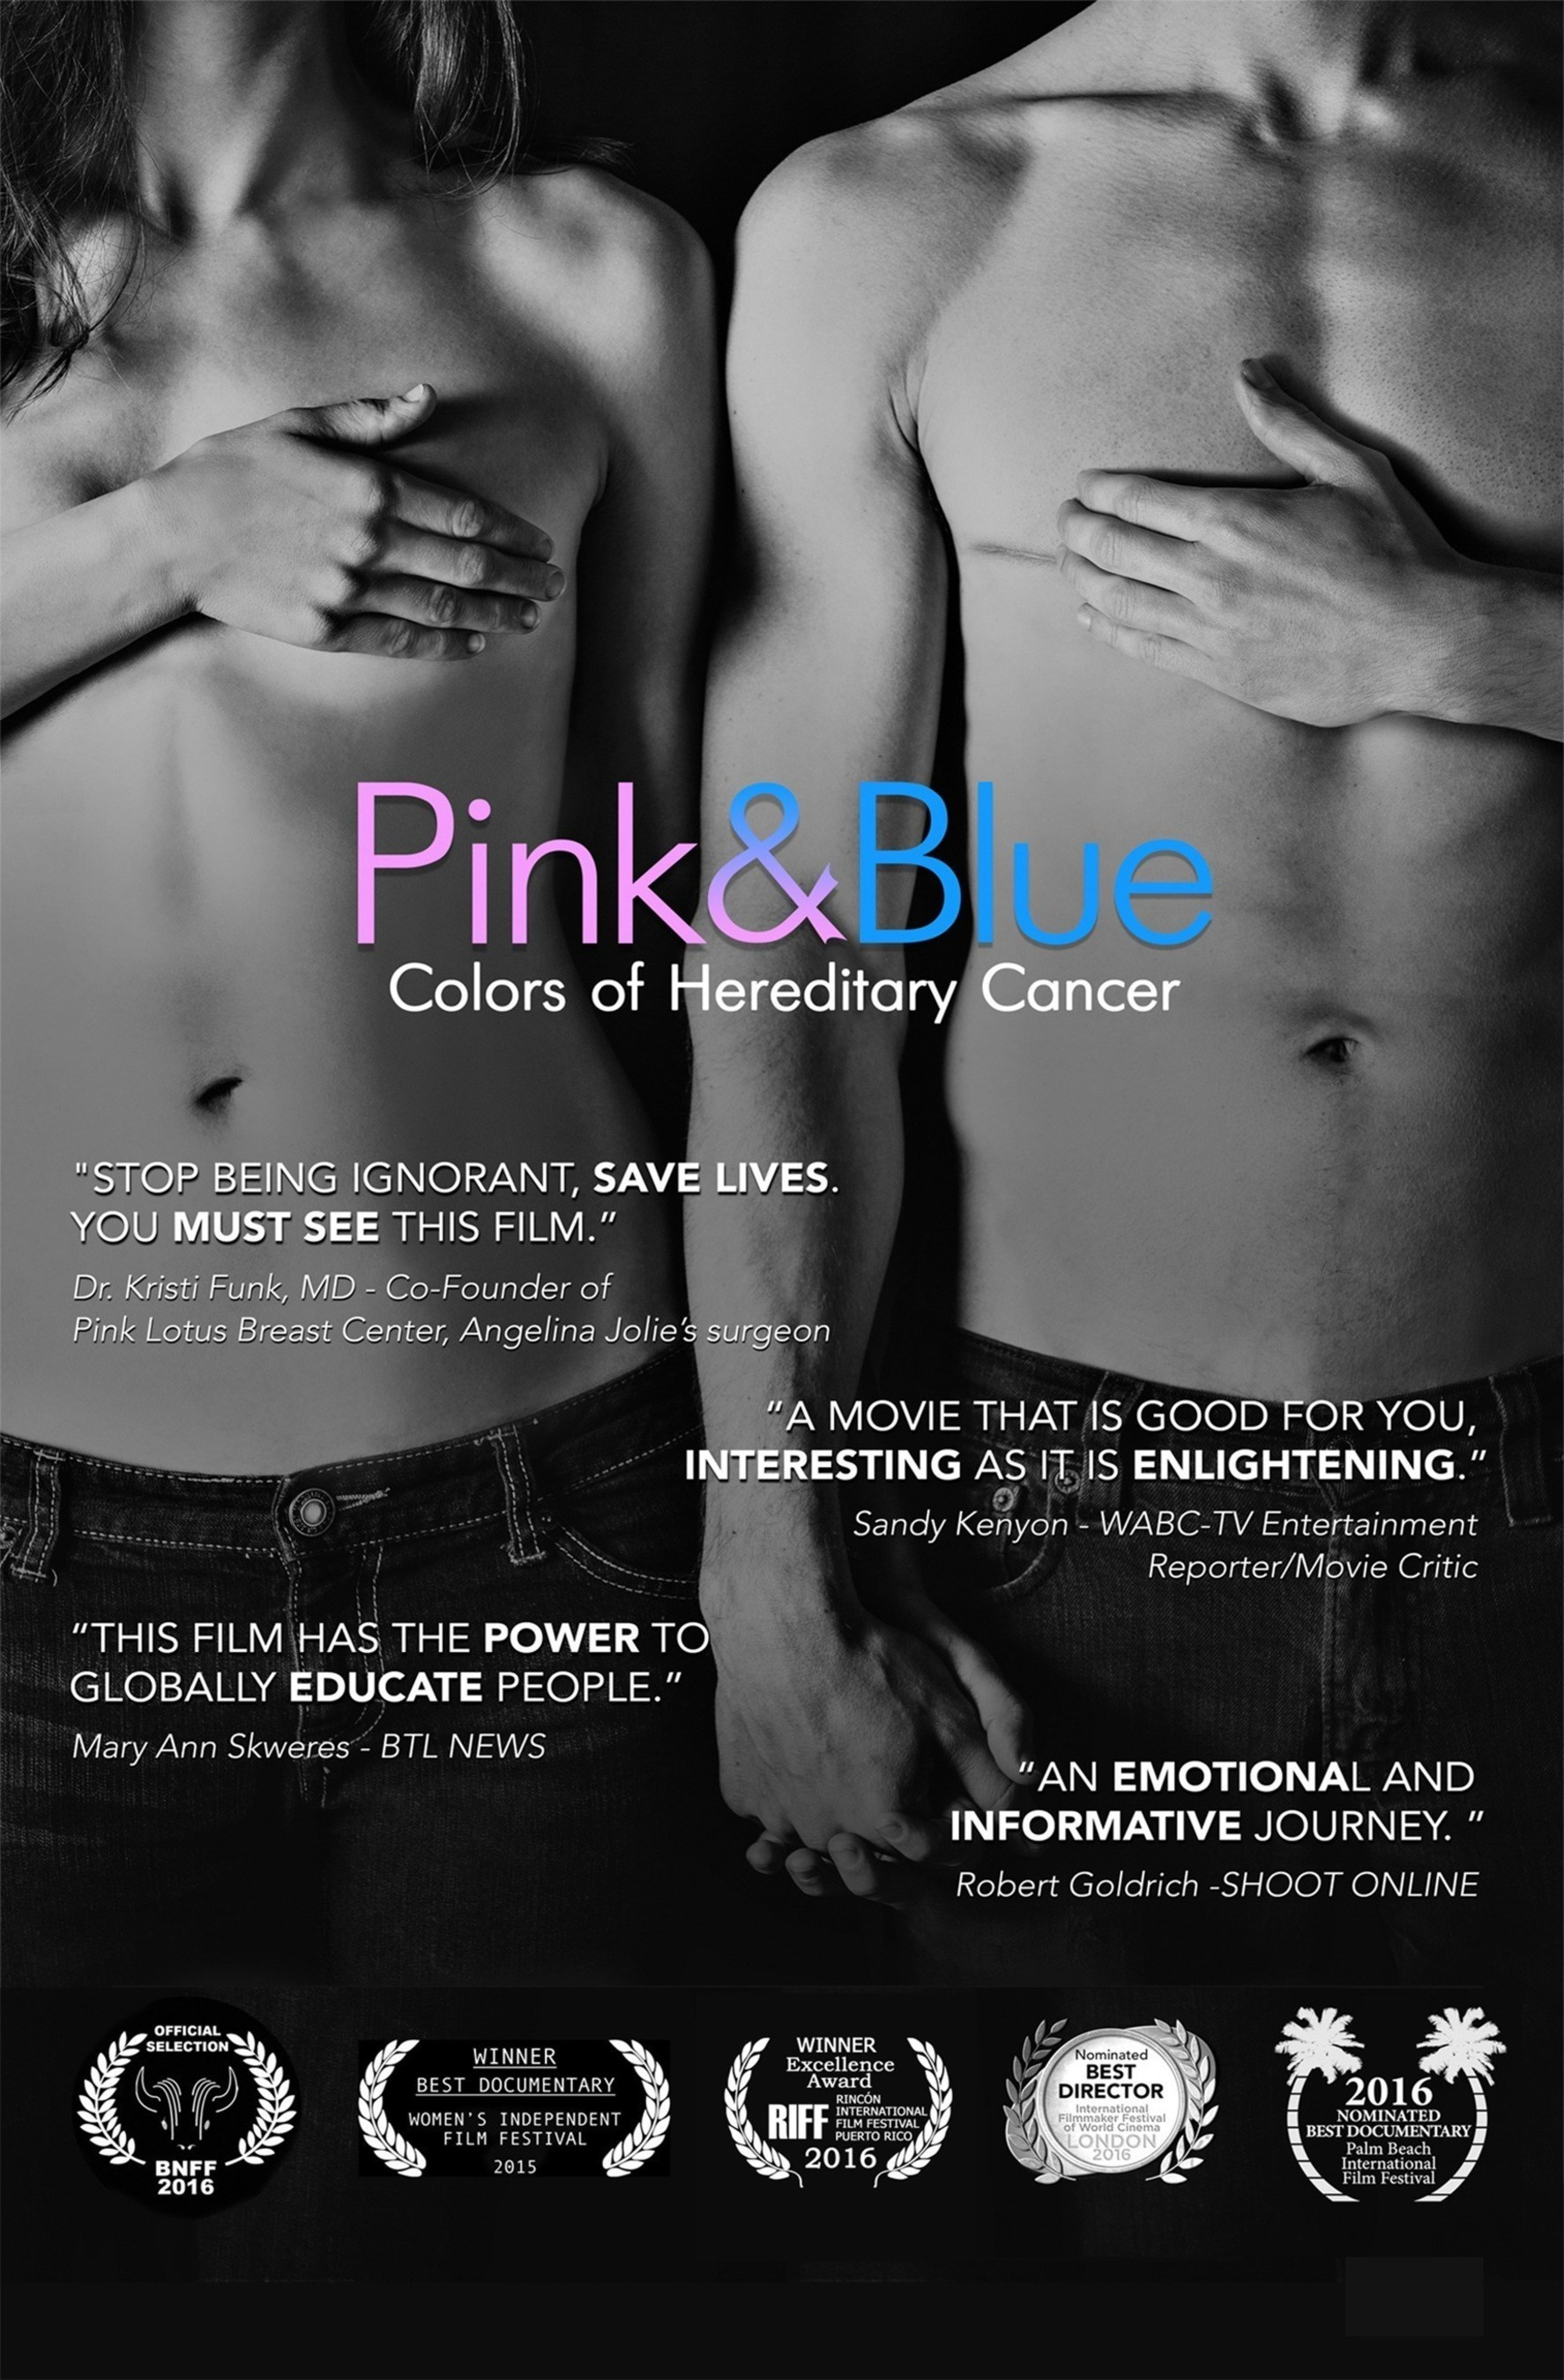 Angelina Jolie provided global awareness about BRCA genetic mutations and increased cancer risks for women. Pink & Blue: Colors of Hereditary Cancer picks up where Angelina left off, highlighting increased cancer risks for men who carry a BRCA genetic mutation.